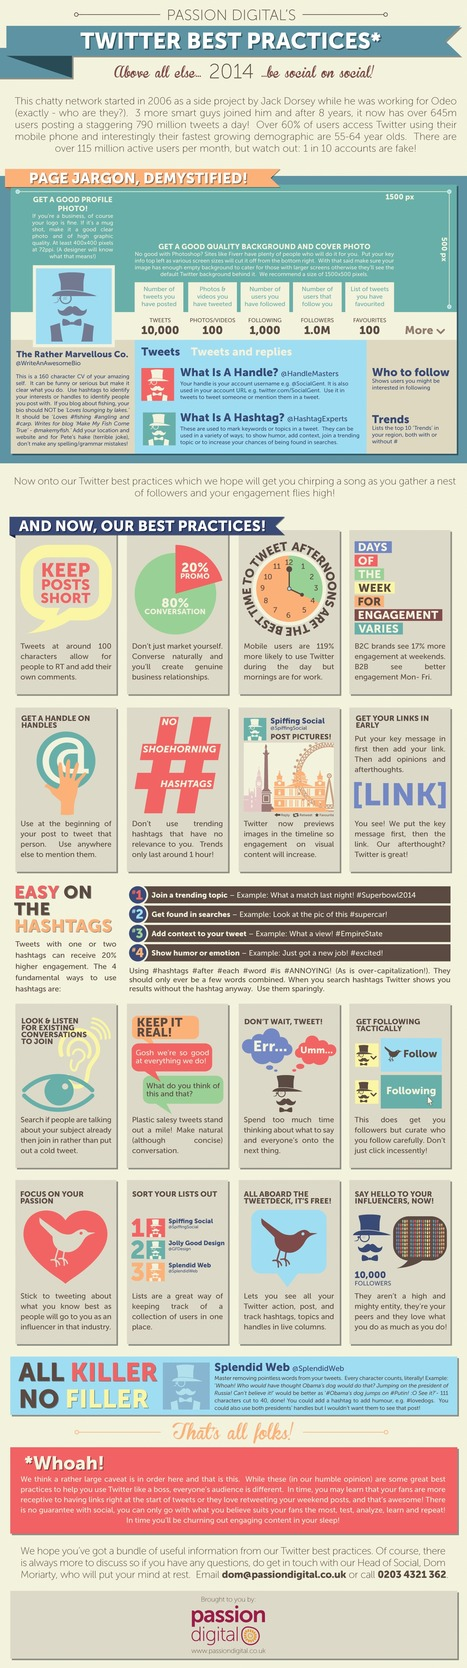 23 (Rather Marvellous) Twitter Best Practices [INFOGRAPHIC] | Better know and better use Social Media today (facebook, twitter...) | Scoop.it